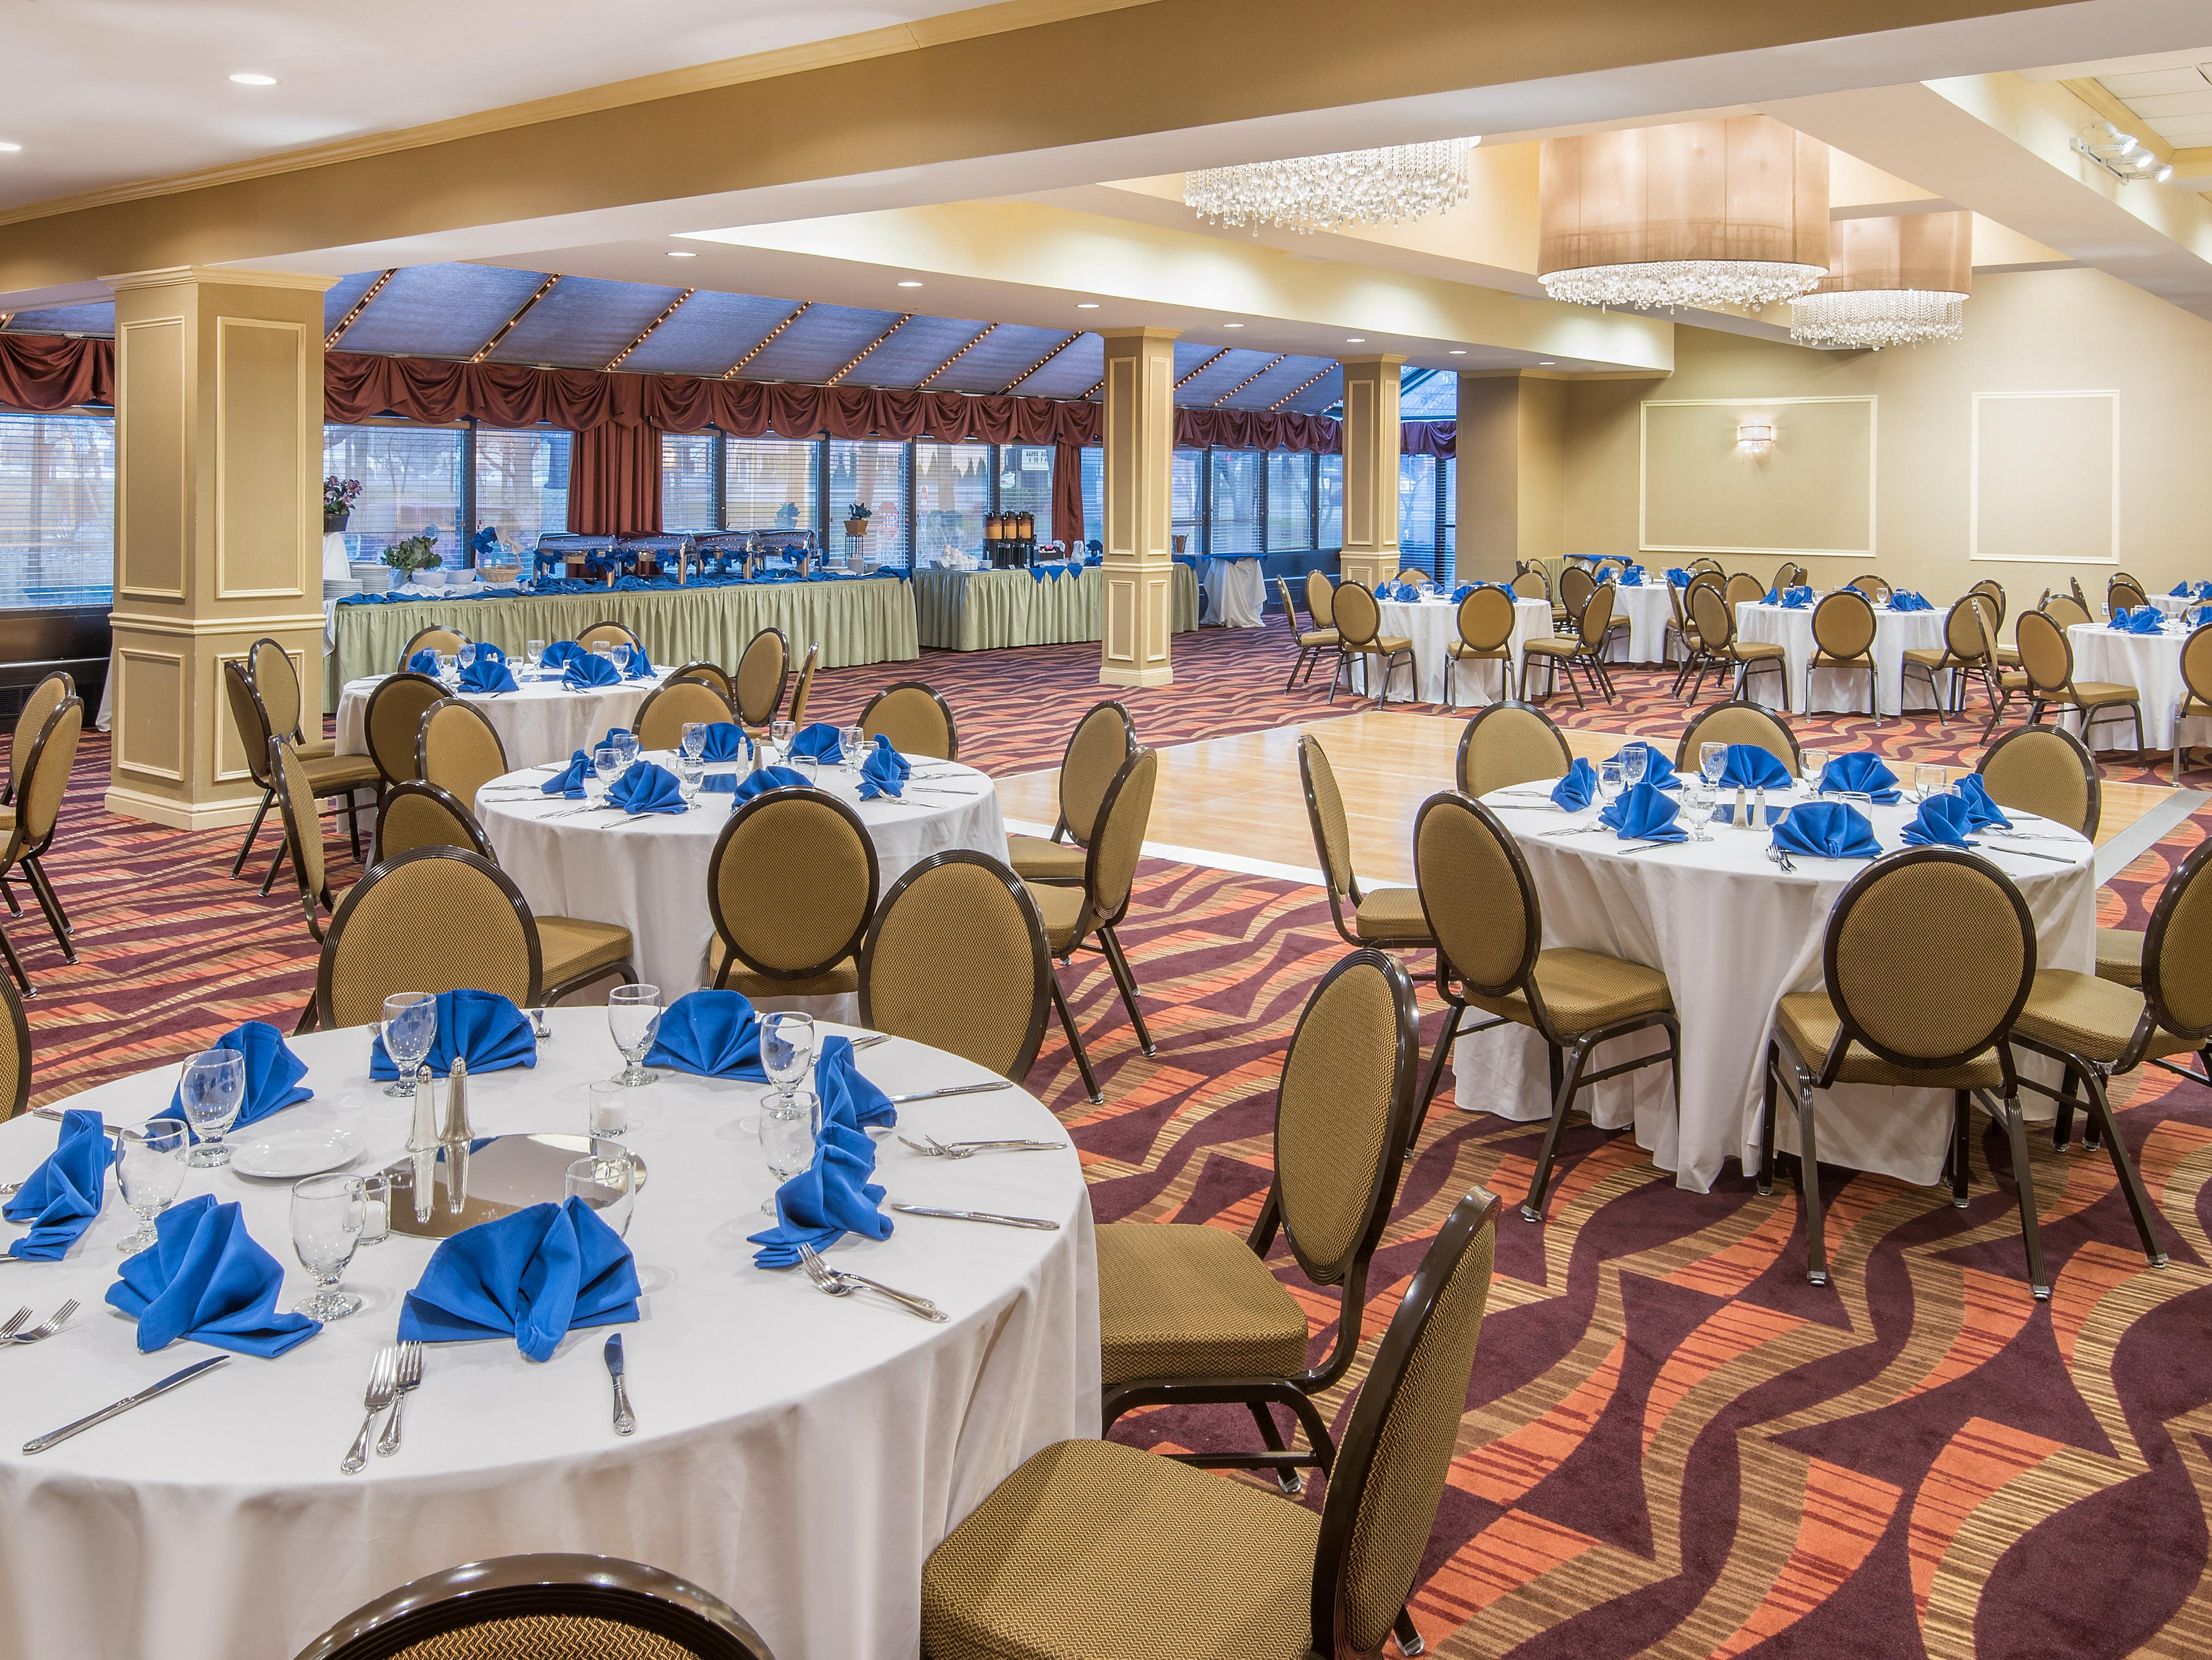 Wondrous Crowne Plaza Edison Hotel Meeting Rooms For Rent In Edison Caraccident5 Cool Chair Designs And Ideas Caraccident5Info